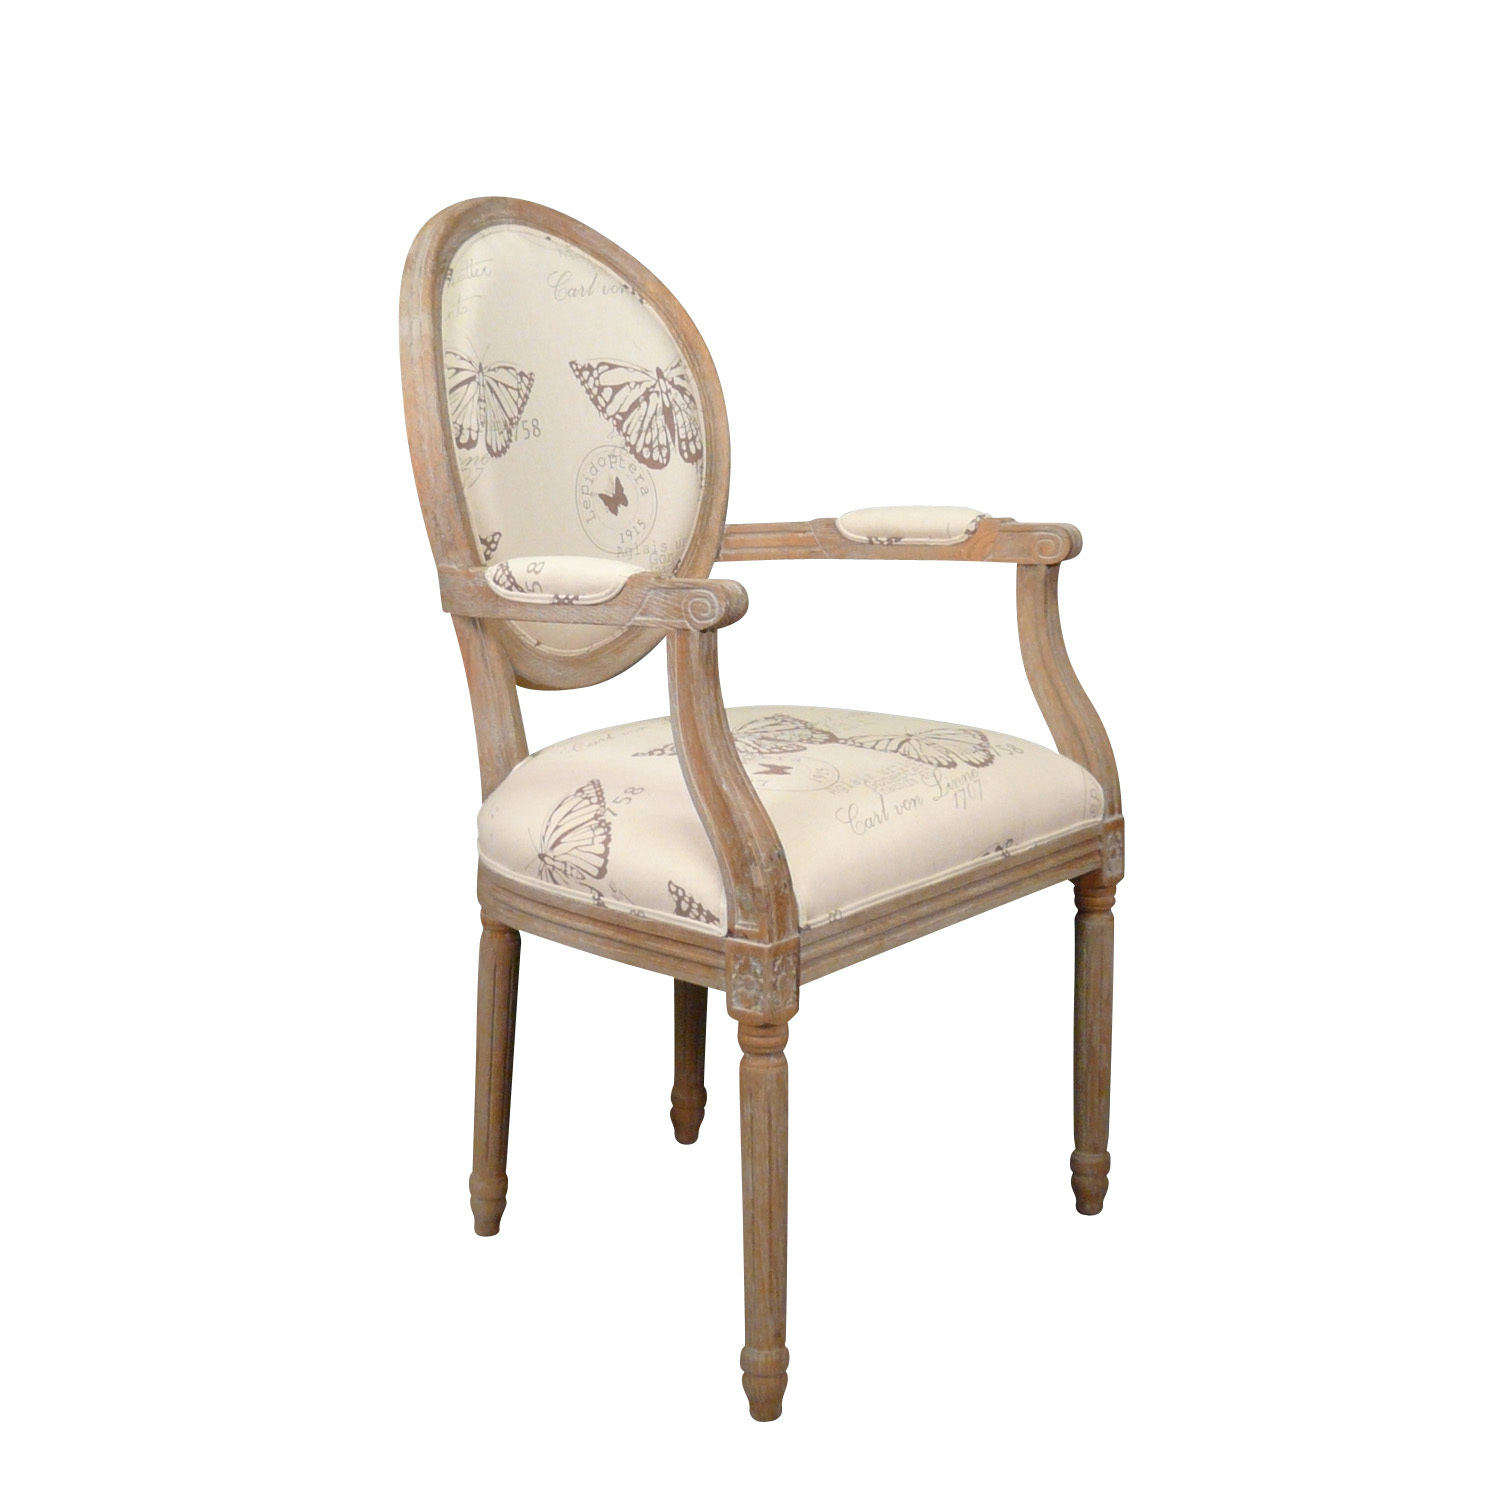 hickory chair louis xvi exercises to relieve back pain armchair photo gallery furniture 07 08 2015 10 17